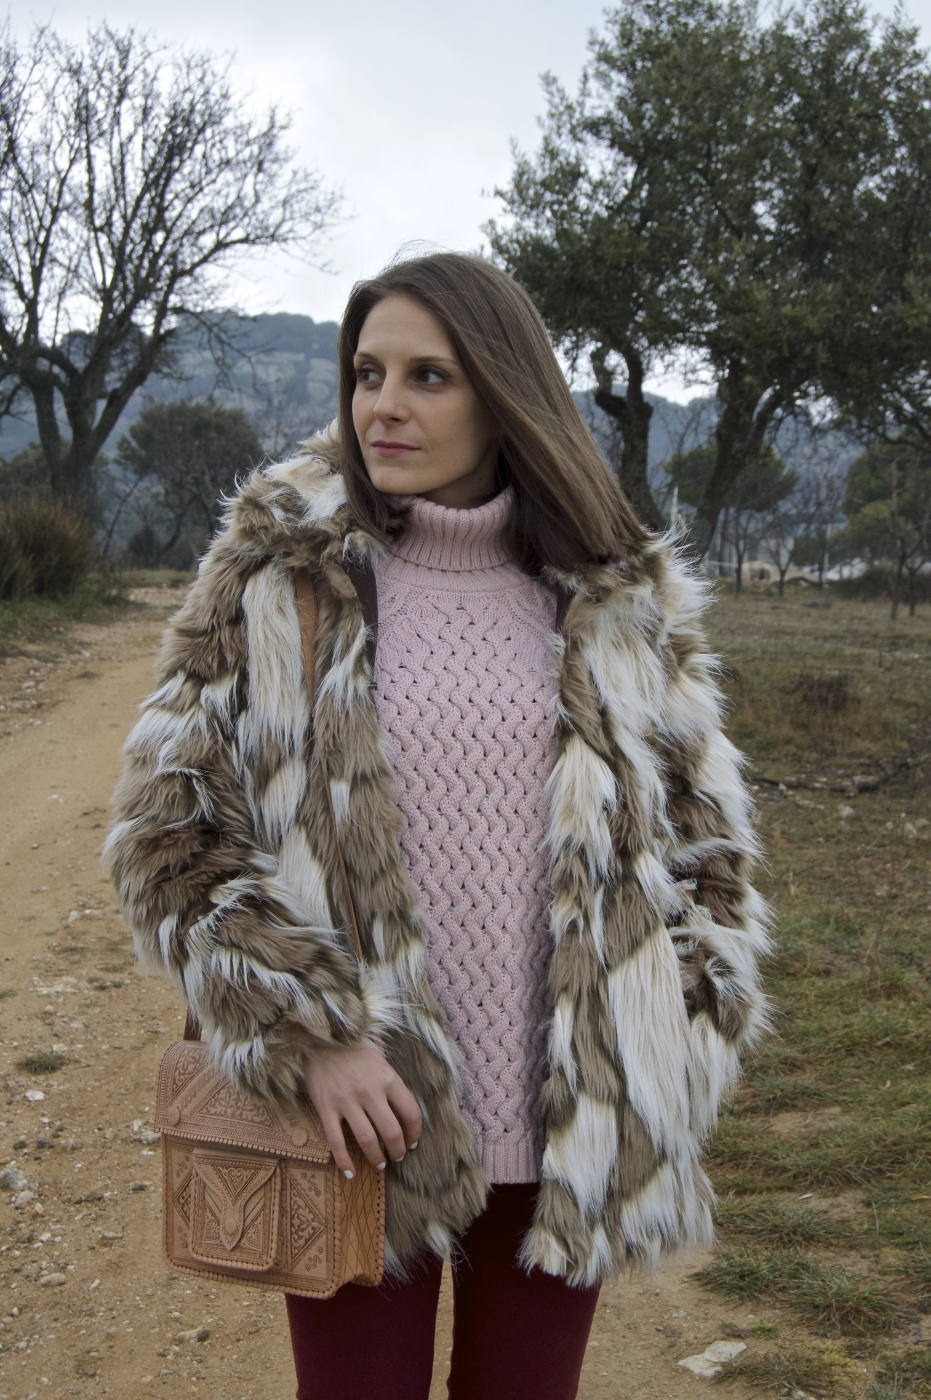 lara-vazquez-mad-lula-outfit-winter-mixing-prints